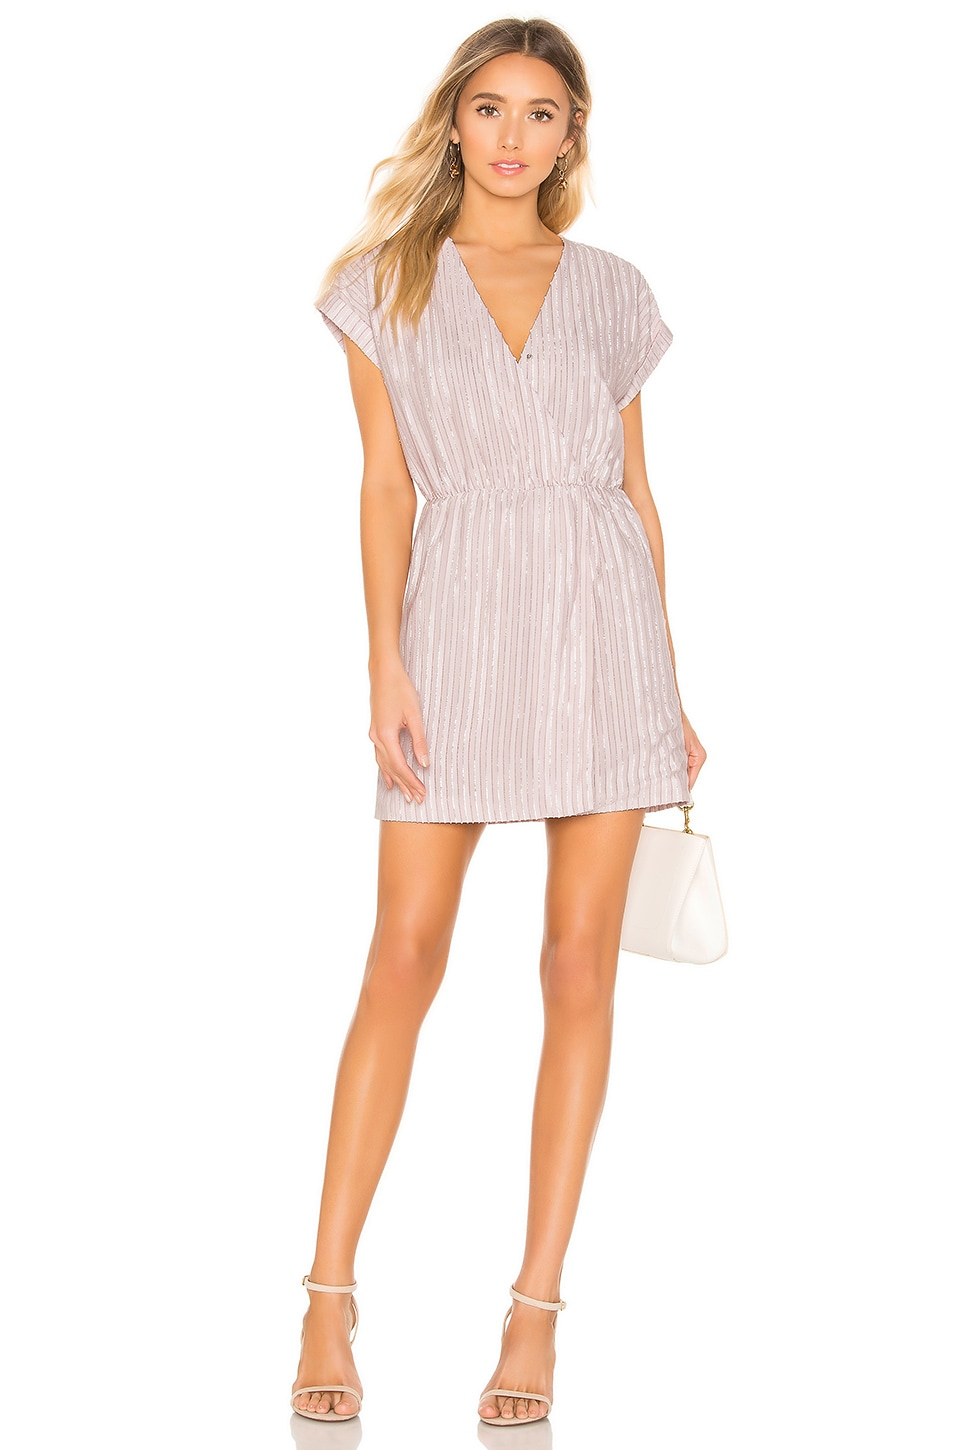 House of Harlow 1960 X REVOLVE Lora Dress in Mauve